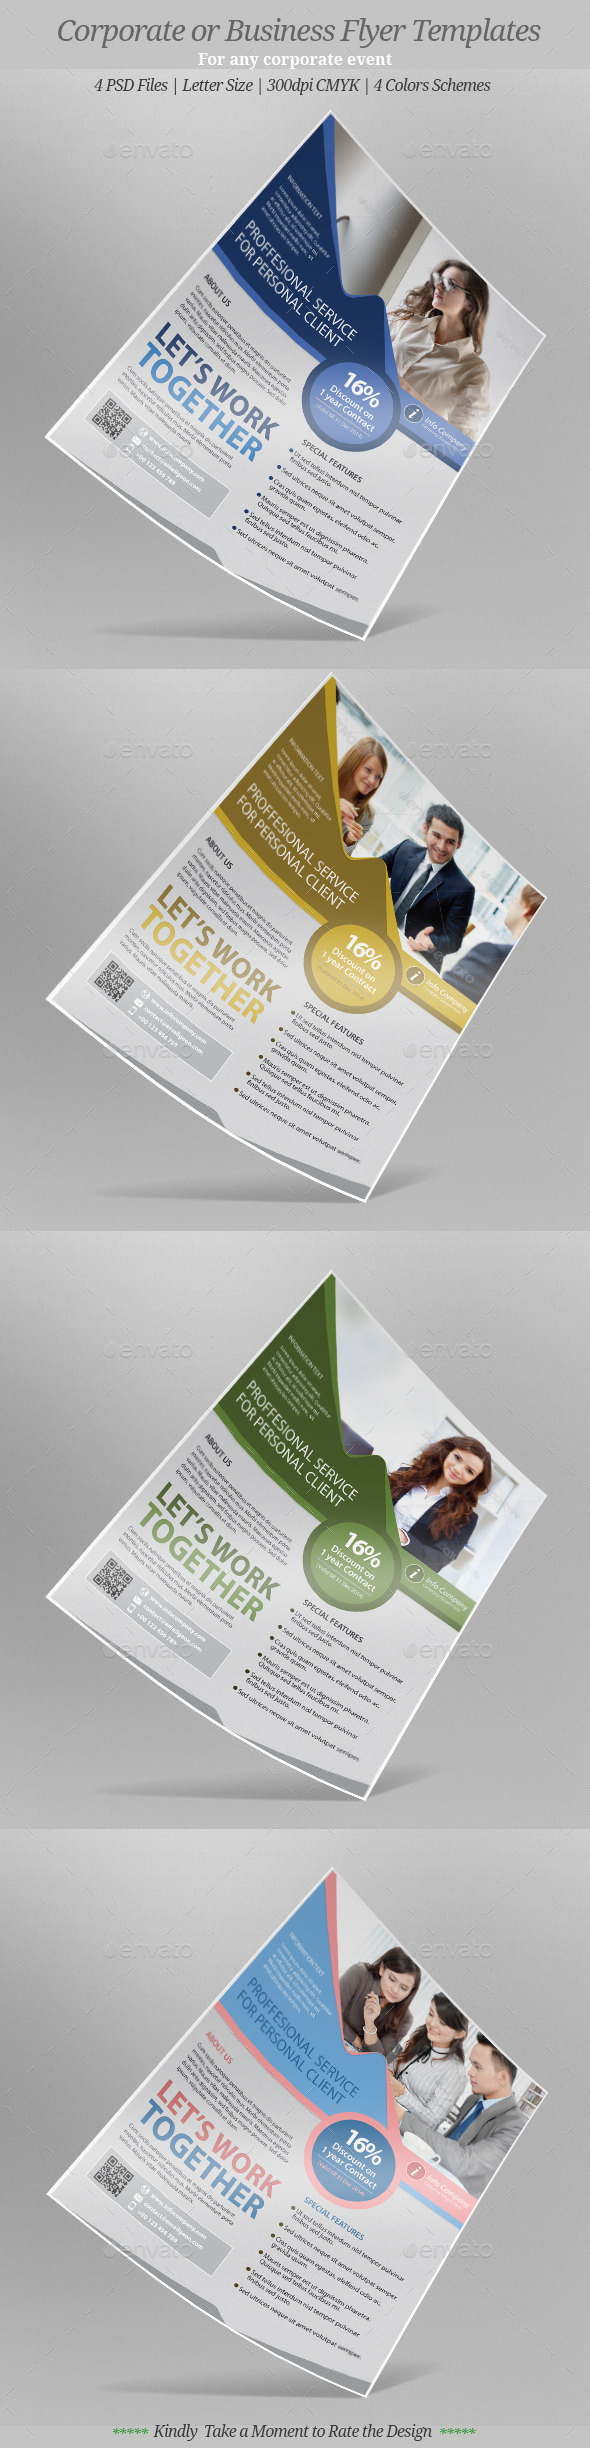 Corporate or Business Flyer Templates - Flyers Print Templates